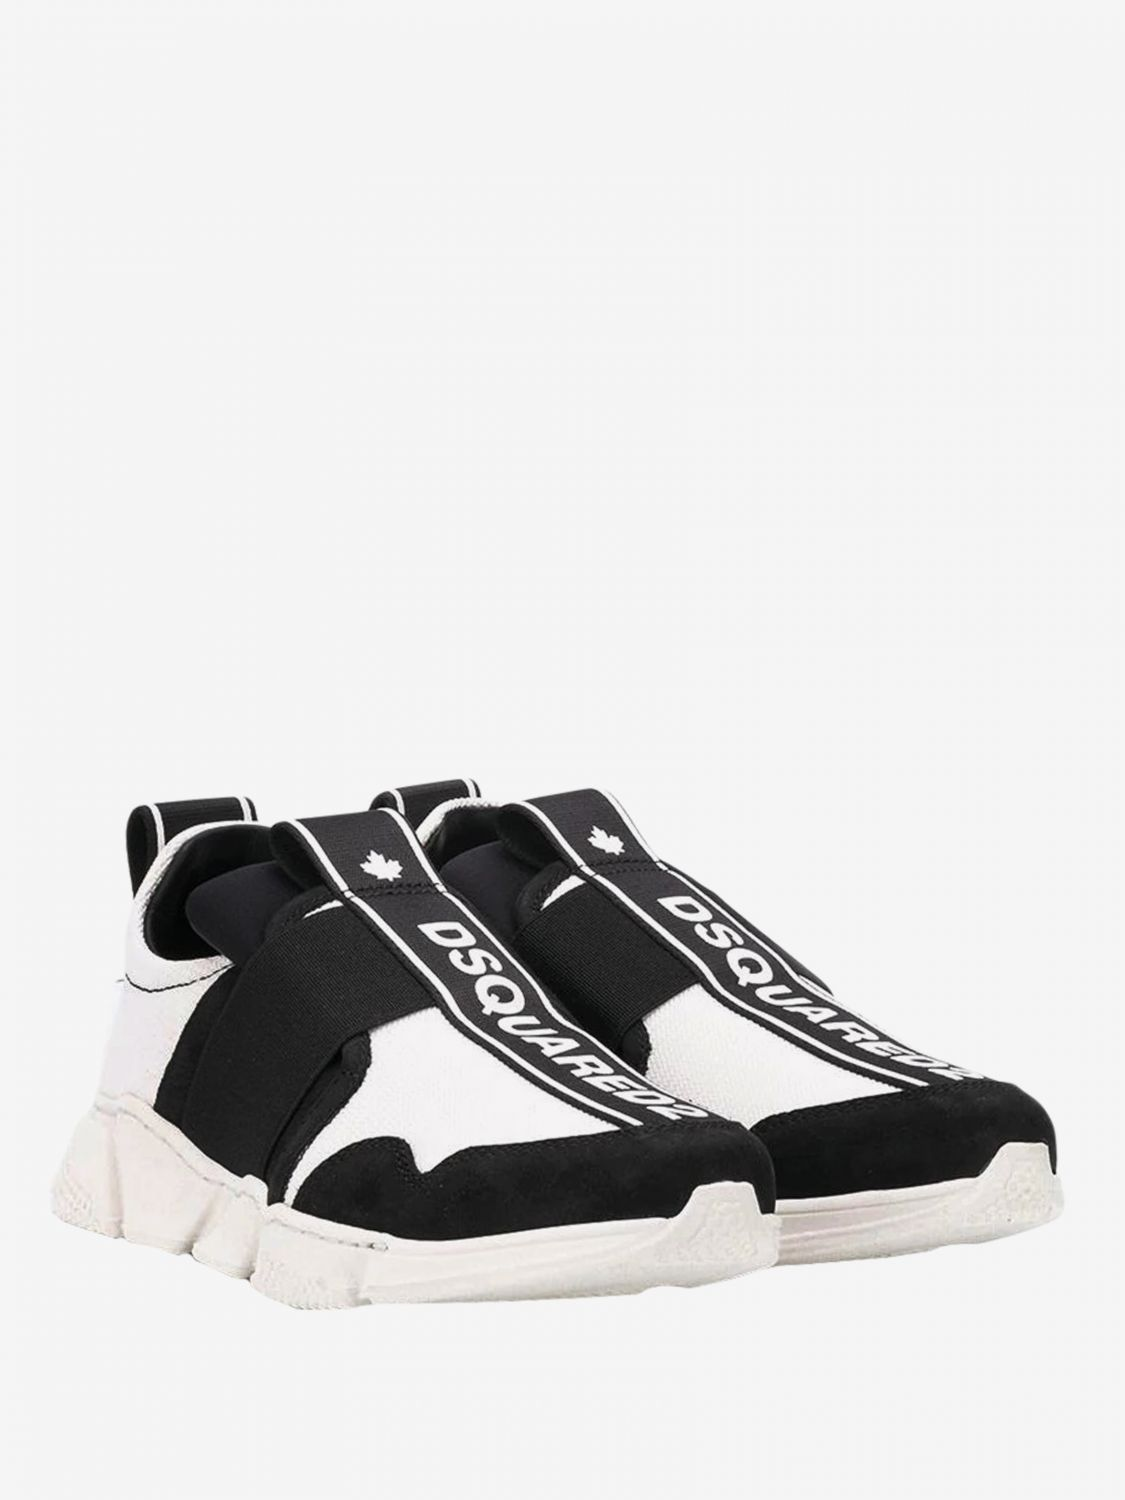 discount dsquared2 shoes